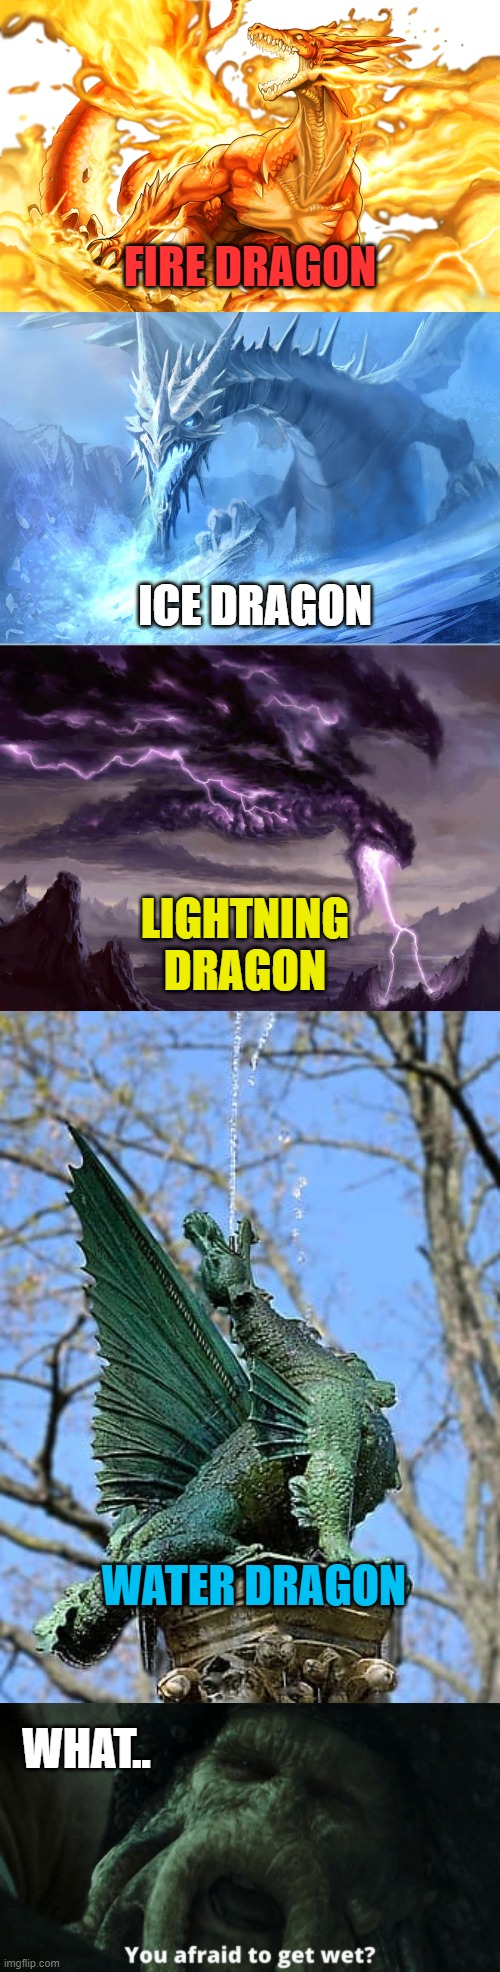 THE WATER DRAGON CAN GIVE YOU A SHOWER |  FIRE DRAGON; ICE DRAGON; LIGHTNING DRAGON; WATER DRAGON; WHAT.. | image tagged in dragon,dragons | made w/ Imgflip meme maker